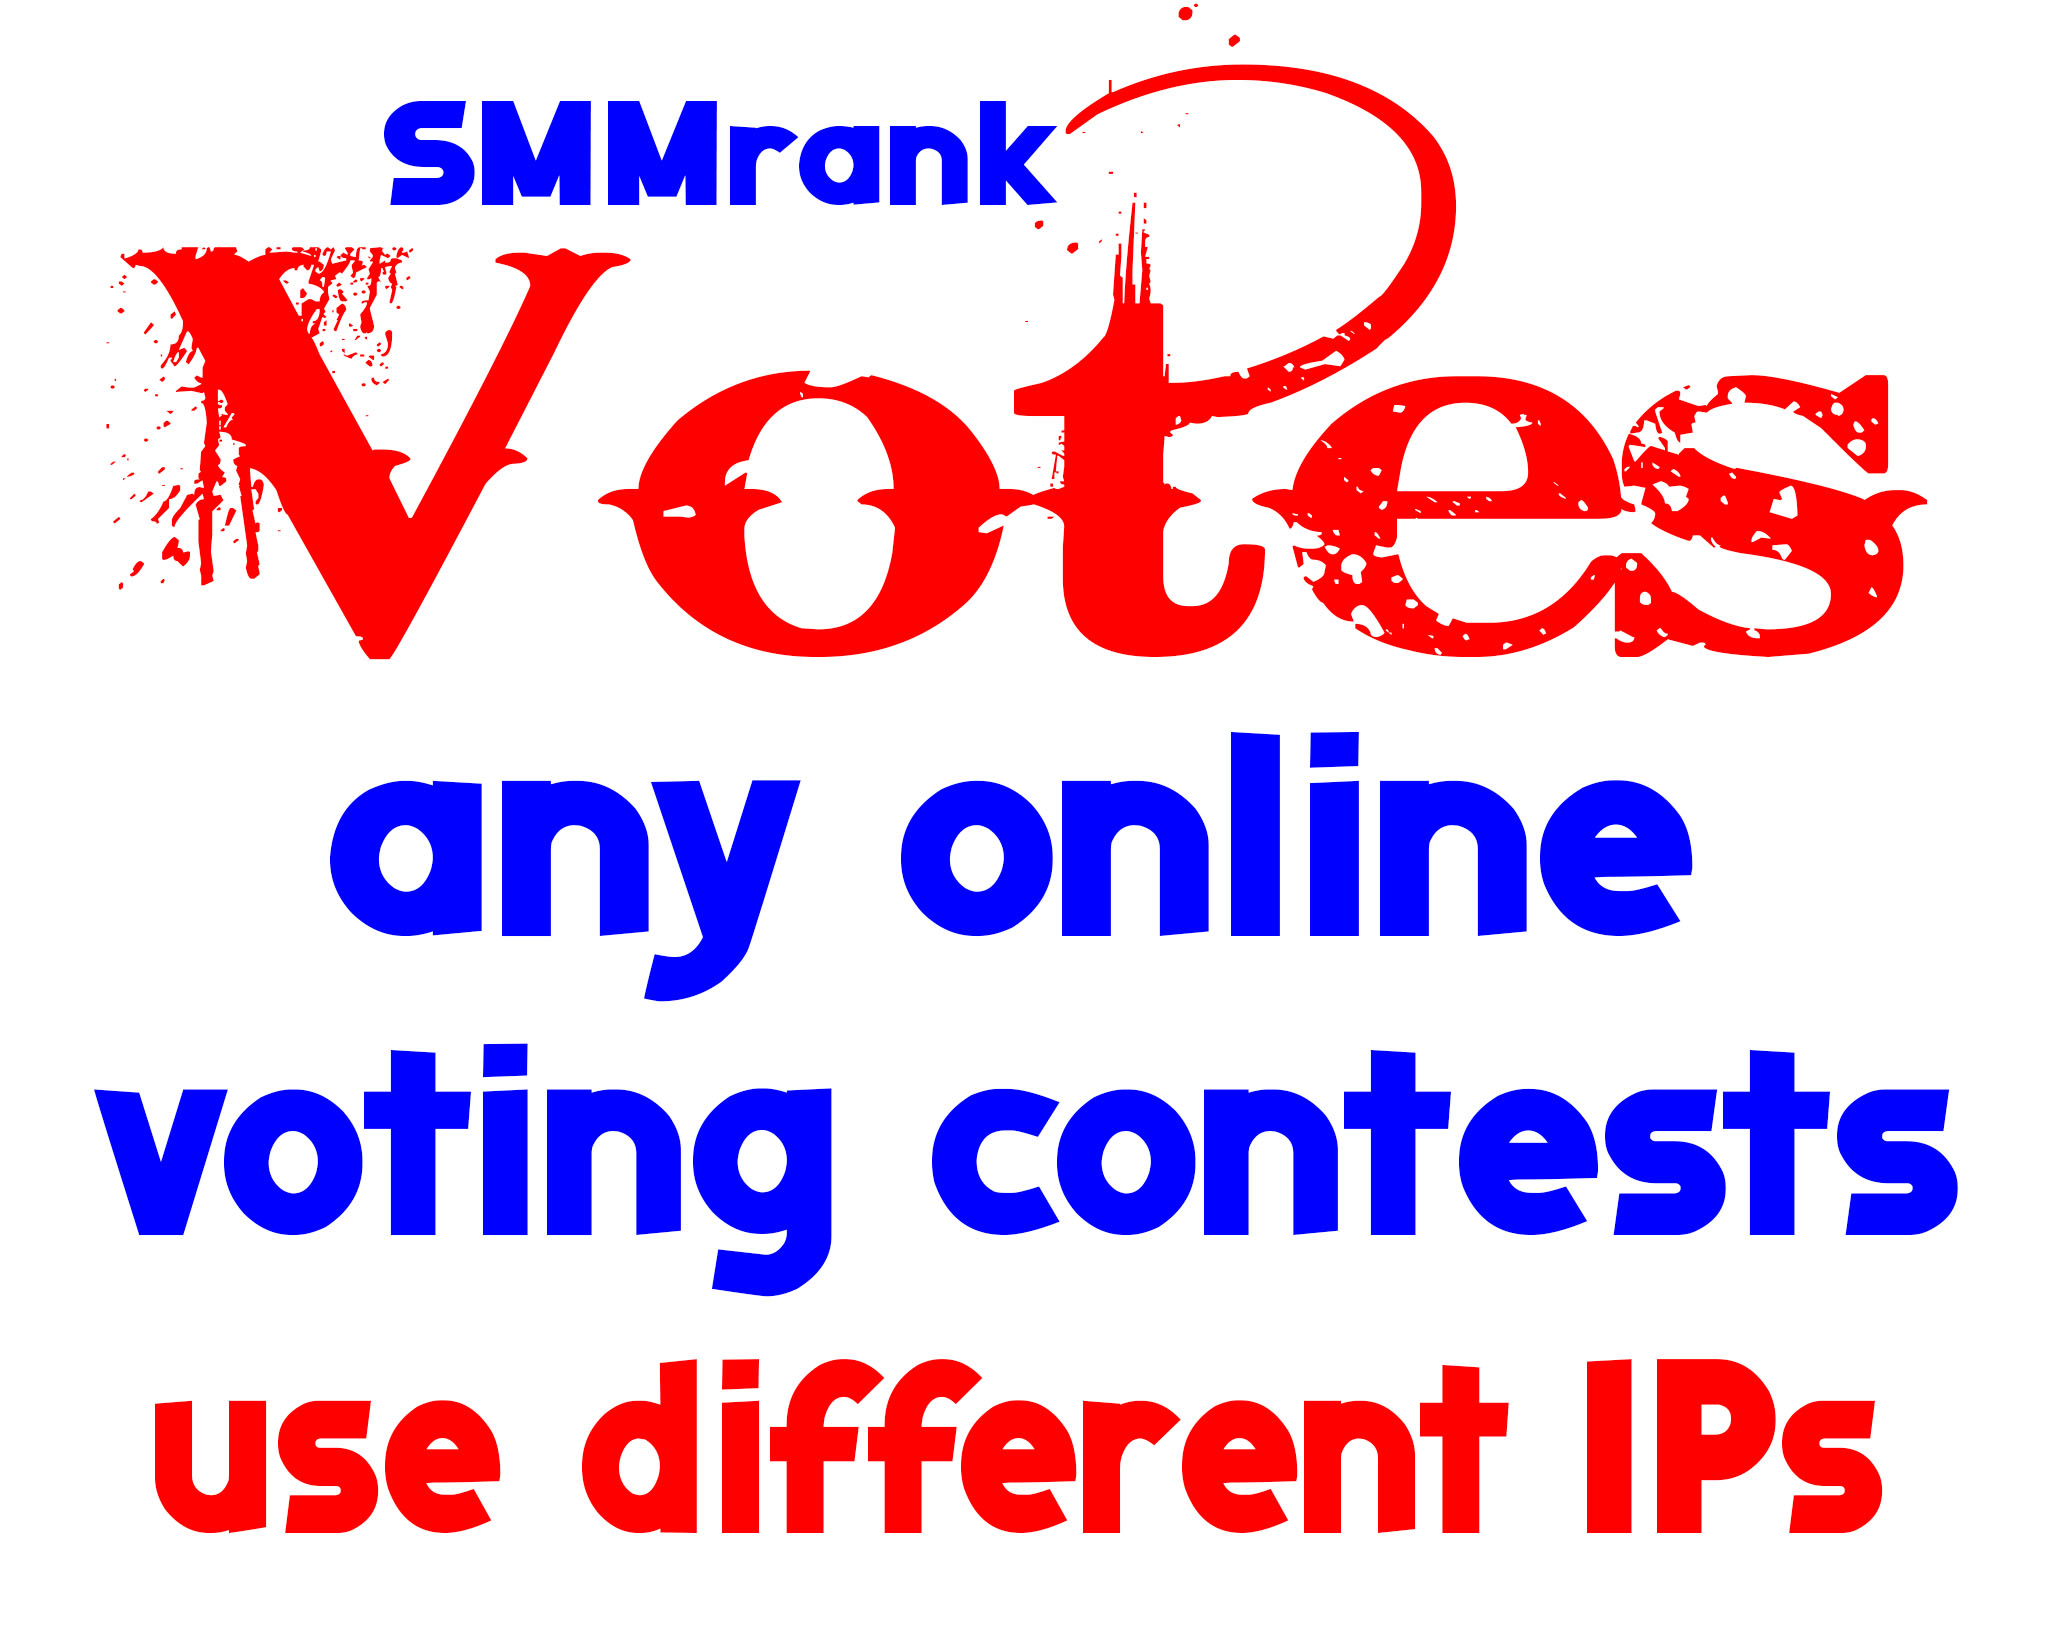 Give 100+ Votes For Any Of Your On-line Voting Contests